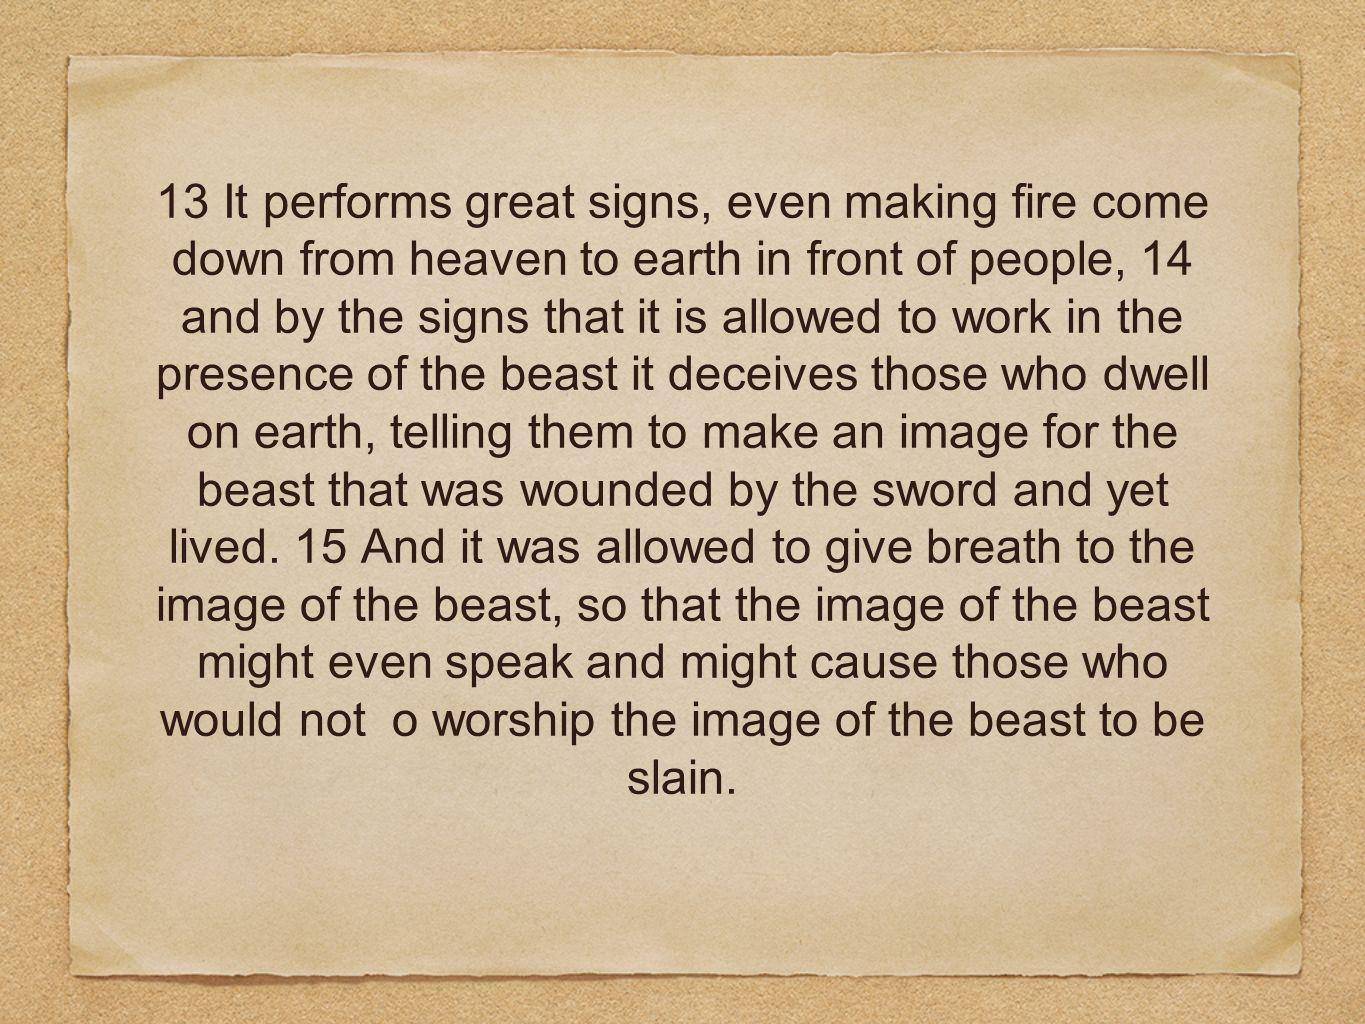 13 It performs great signs, even making fire come down from heaven to earth in front of people, 14 and by the signs that it is allowed to work in the presence of the beast it deceives those who dwell on earth, telling them to make an image for the beast that was wounded by the sword and yet lived.